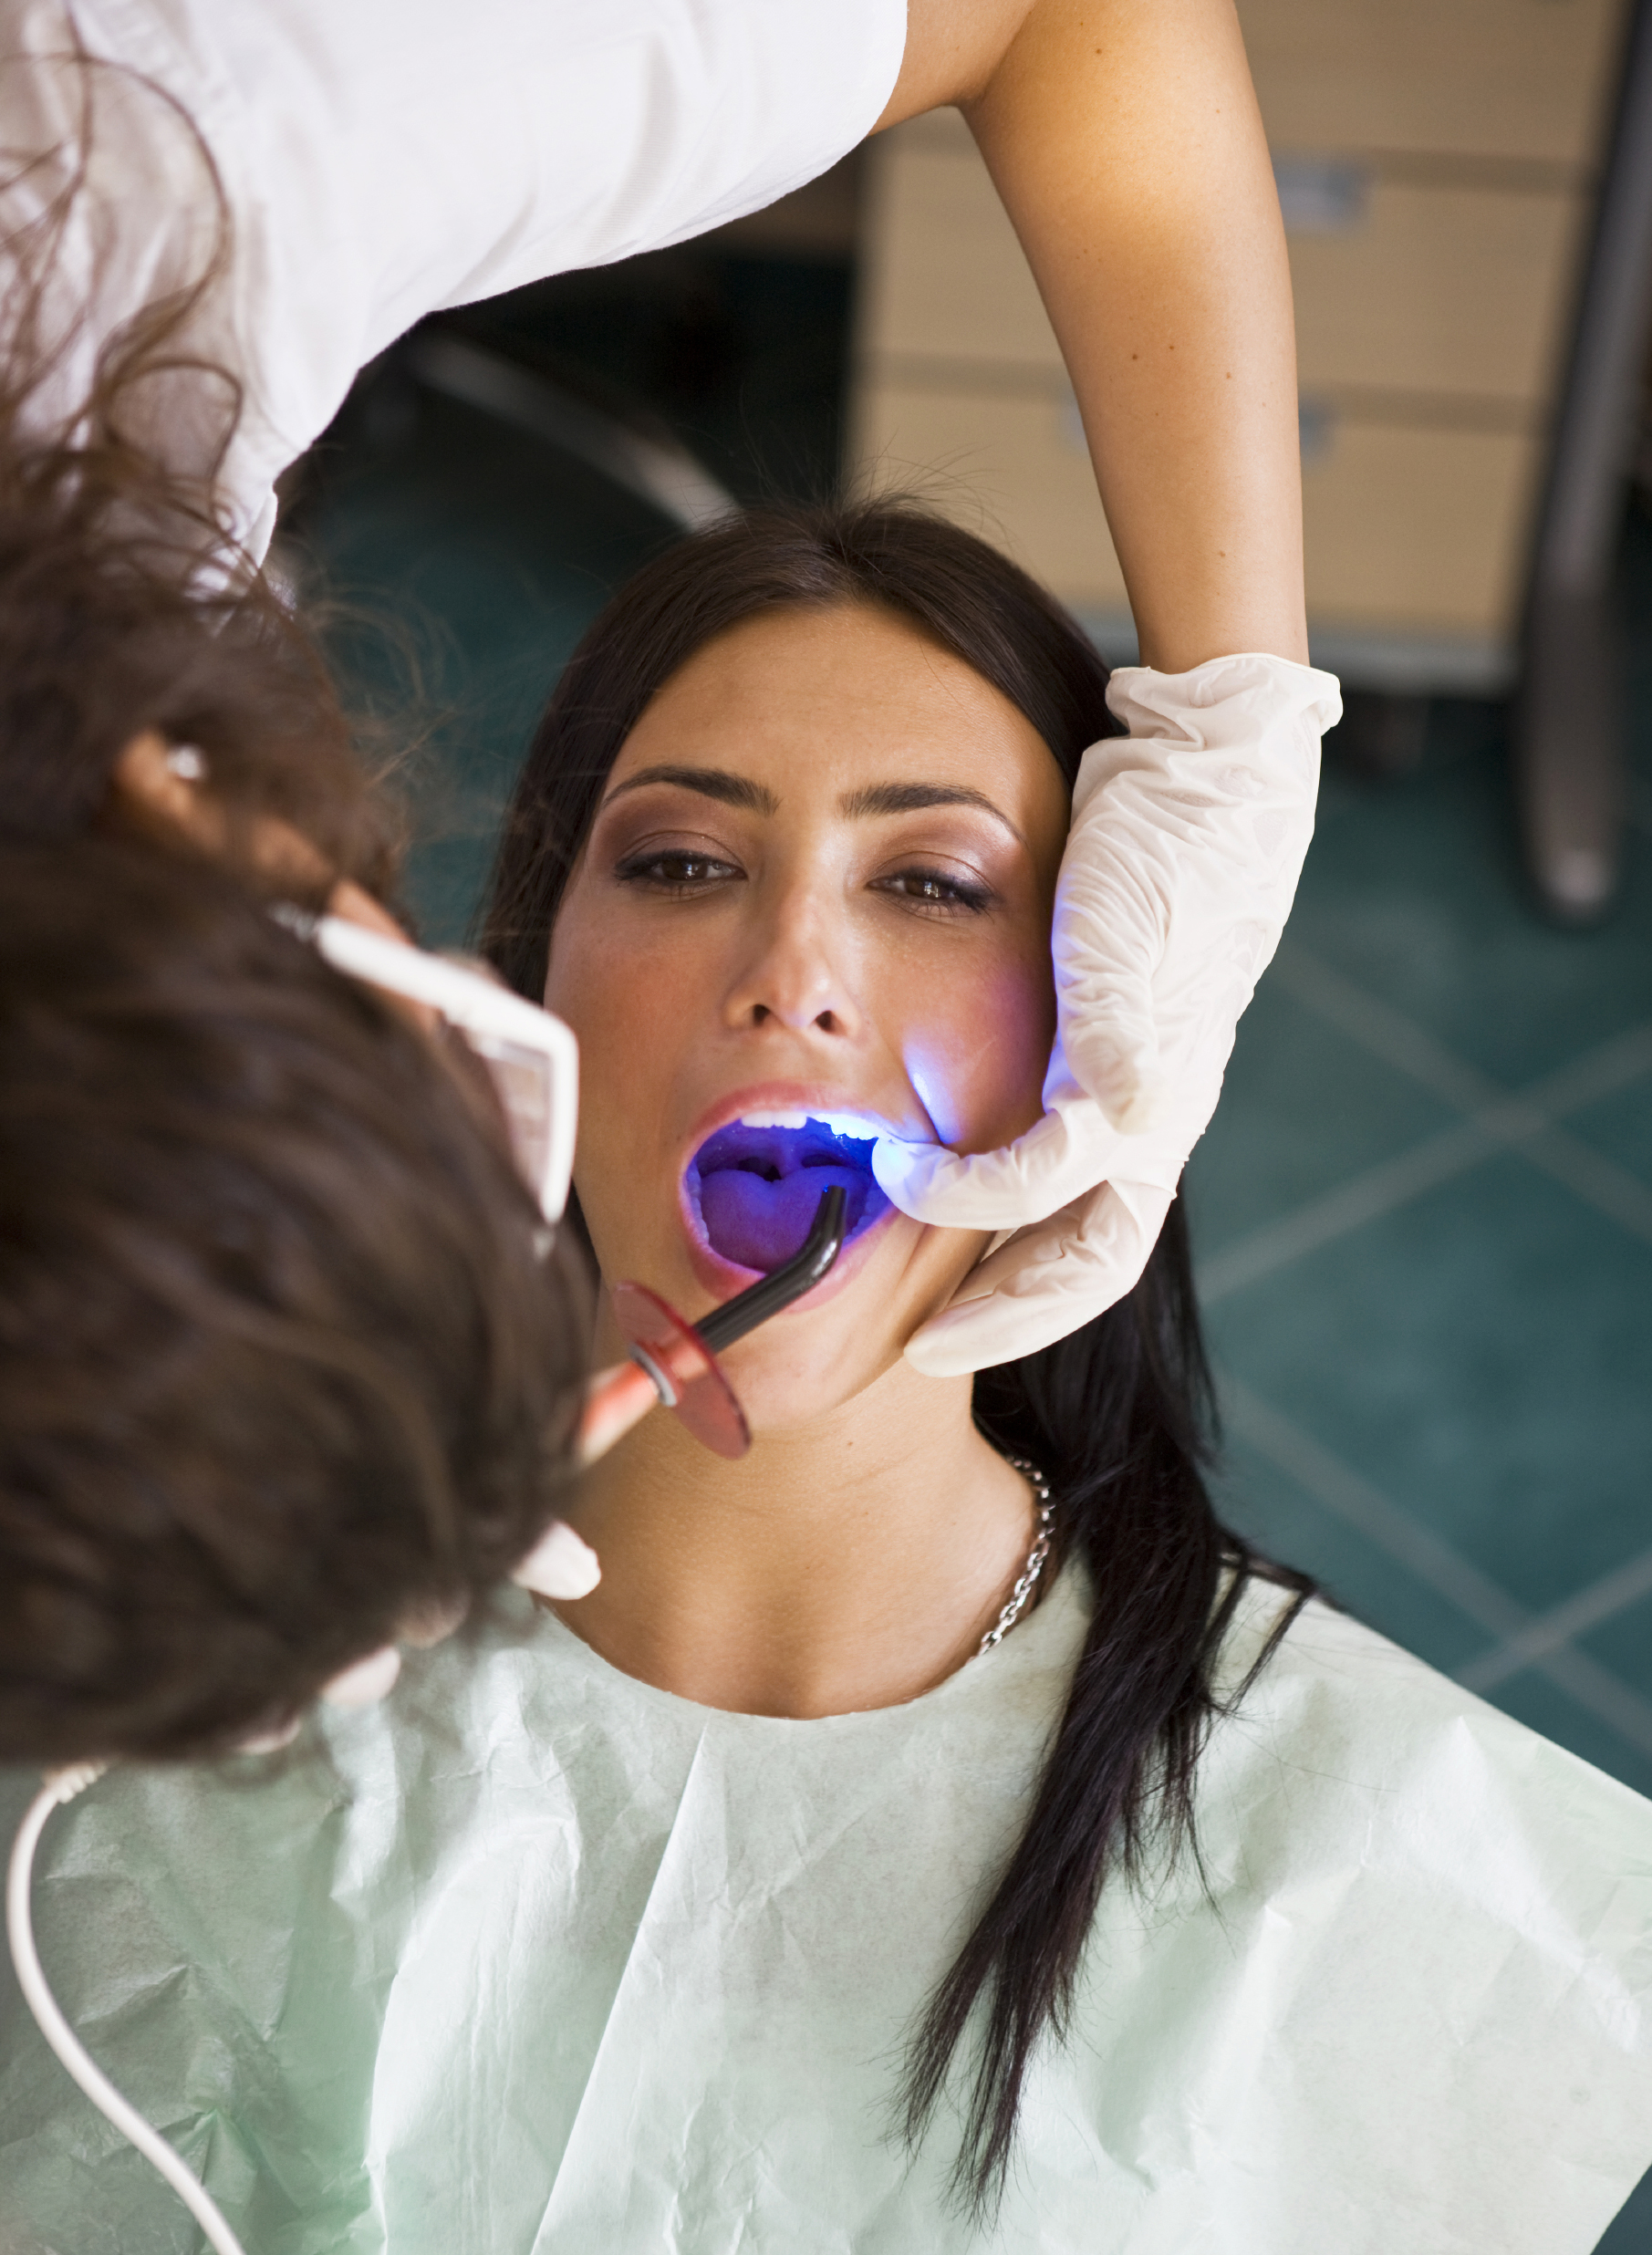 Intra-Oral cameras help Dr. LaVant see your mouth in detail.